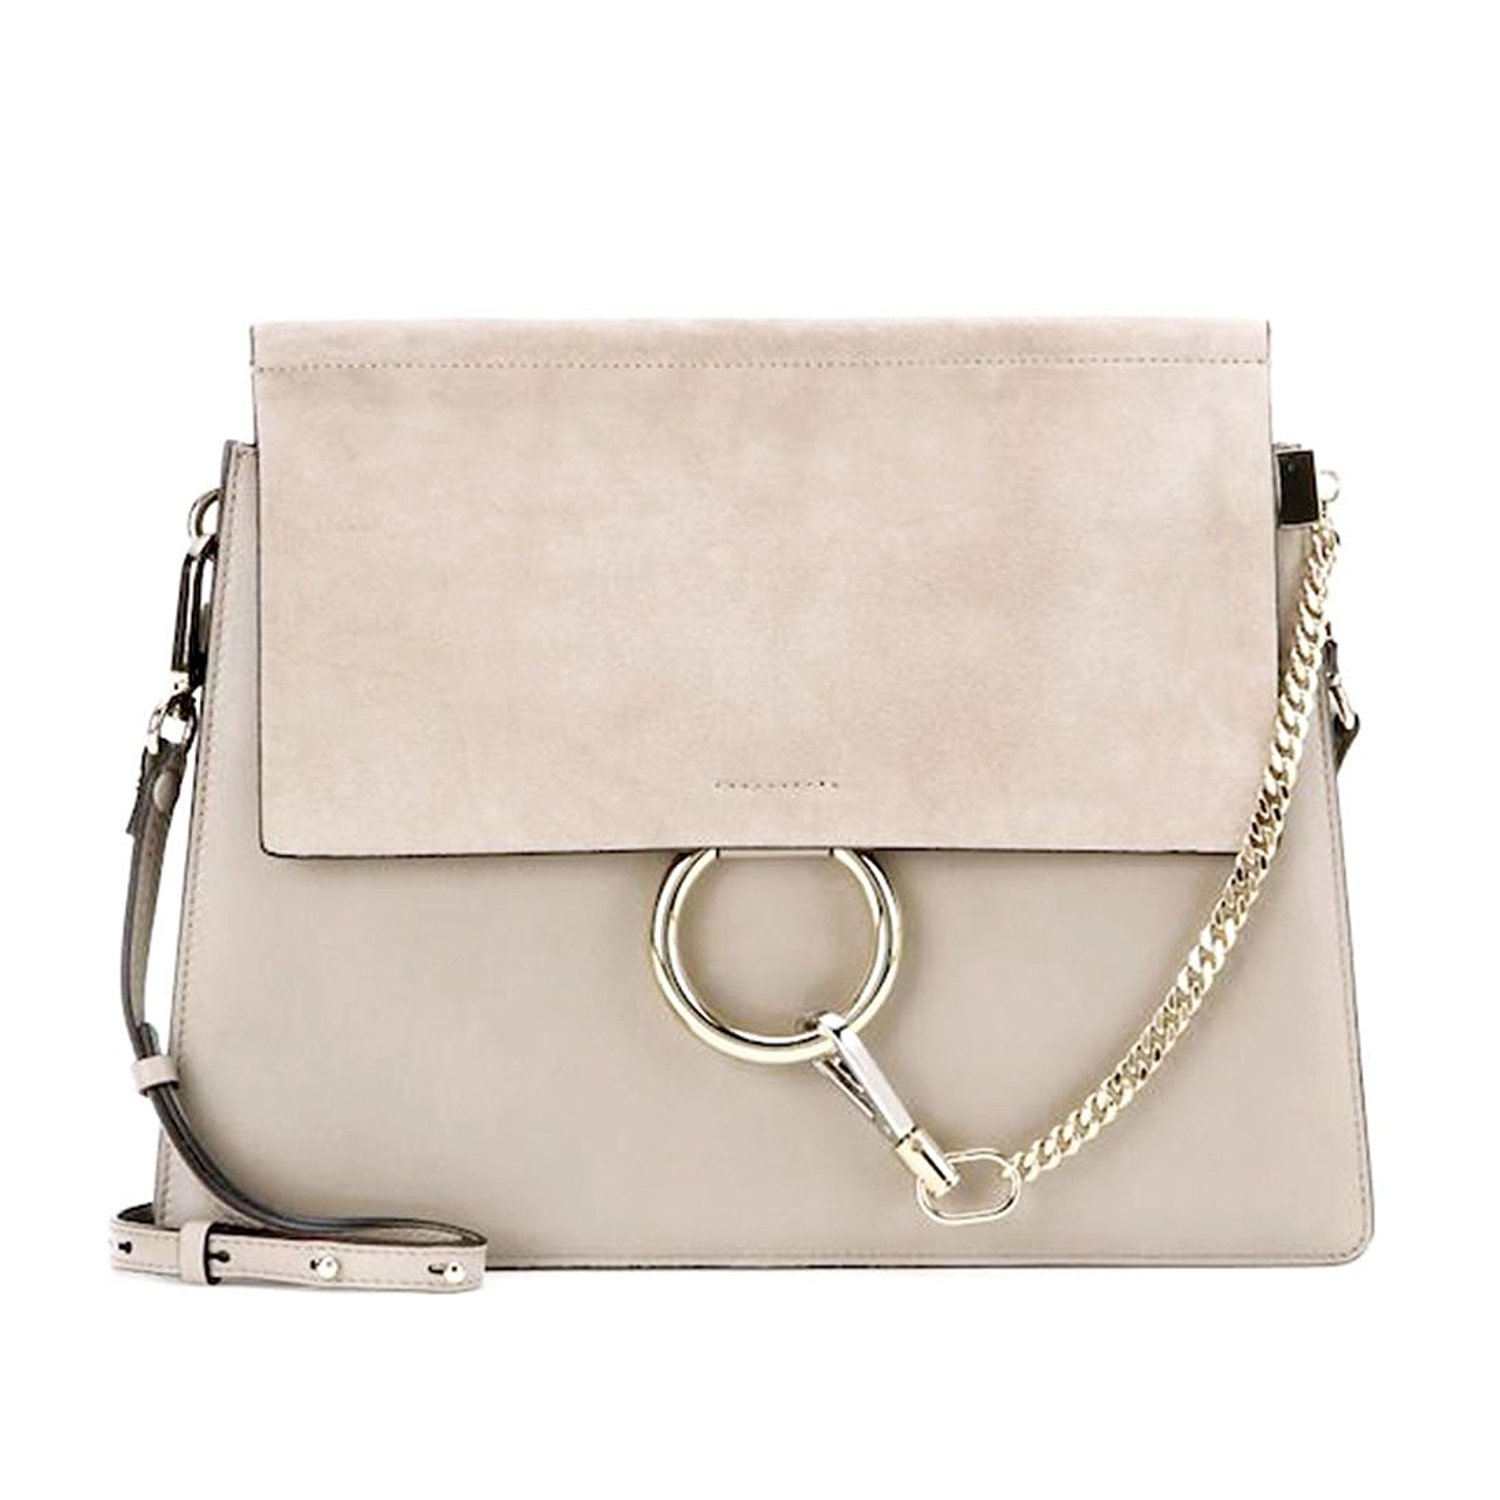 Chloe Faye Bag Similarity